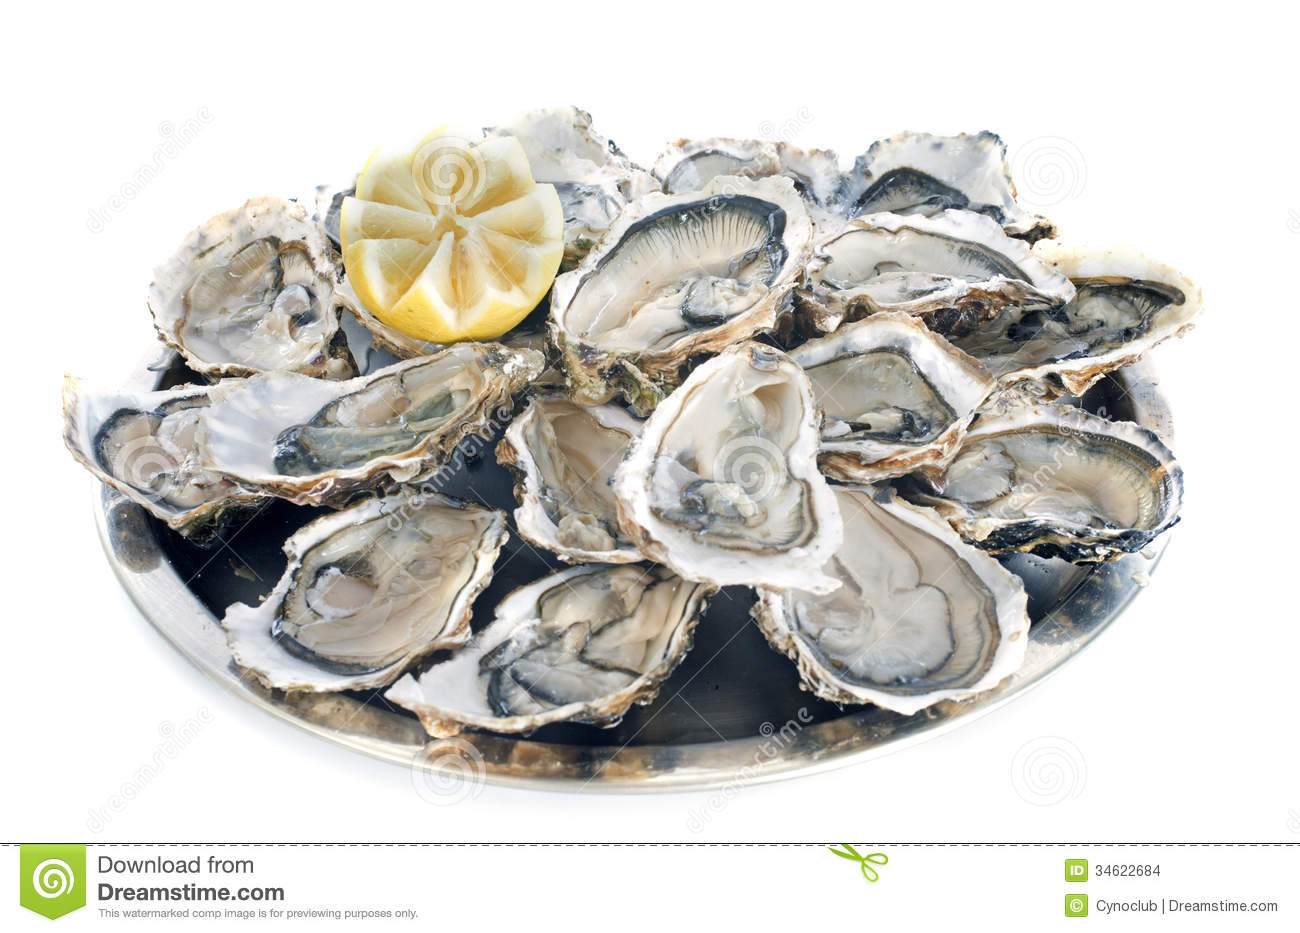 Background clipart oyster.